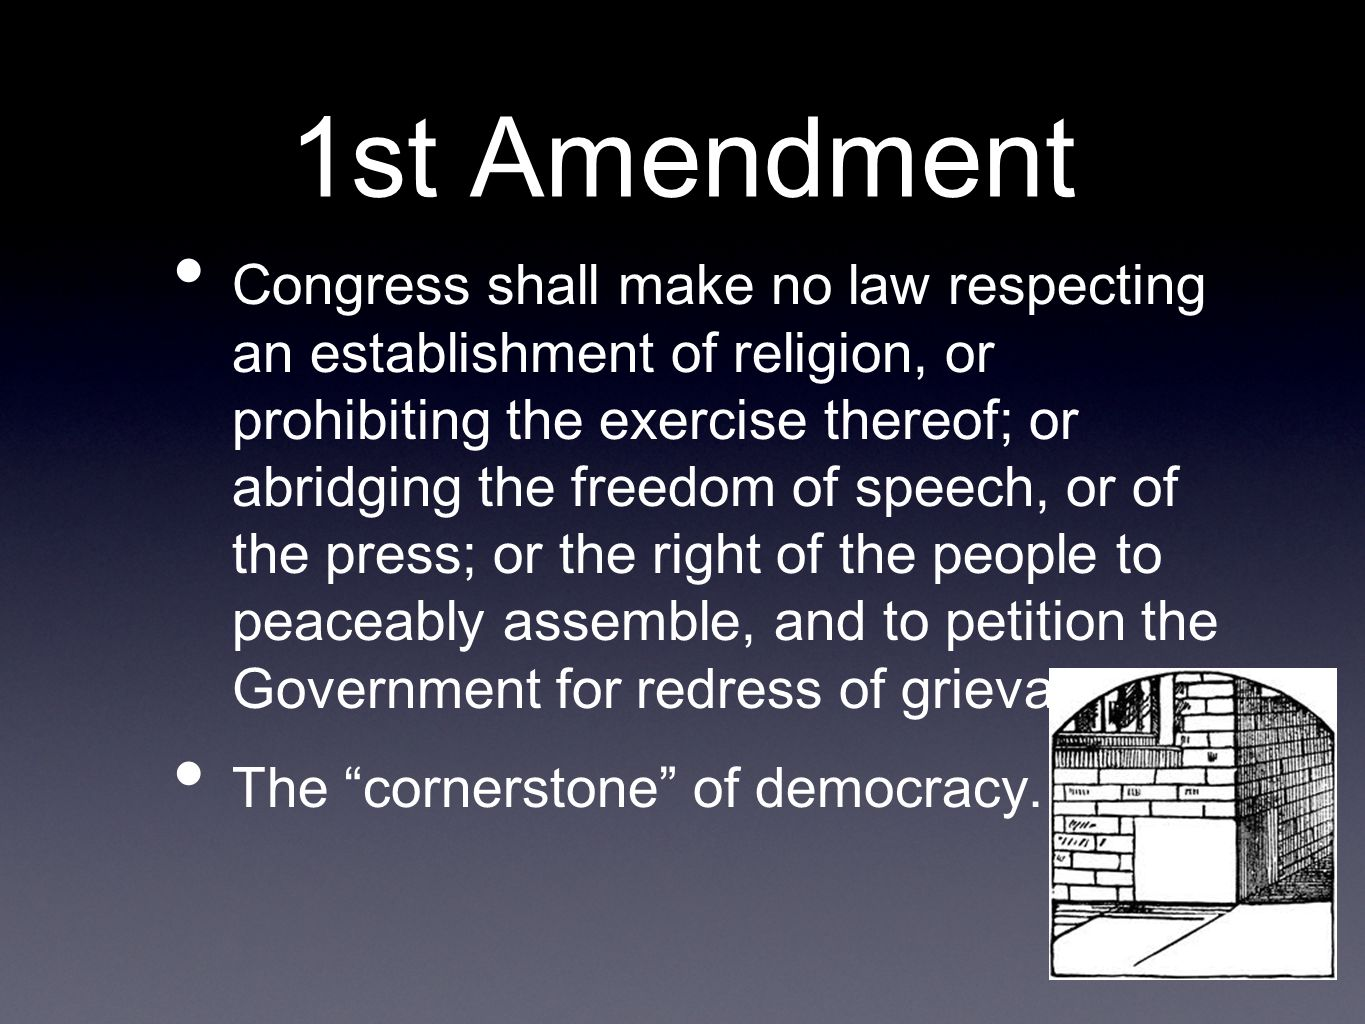 1st Amendment Congress shall make no law respecting an establishment of religion, or prohibiting the exercise thereof; or abridging the freedom of spe